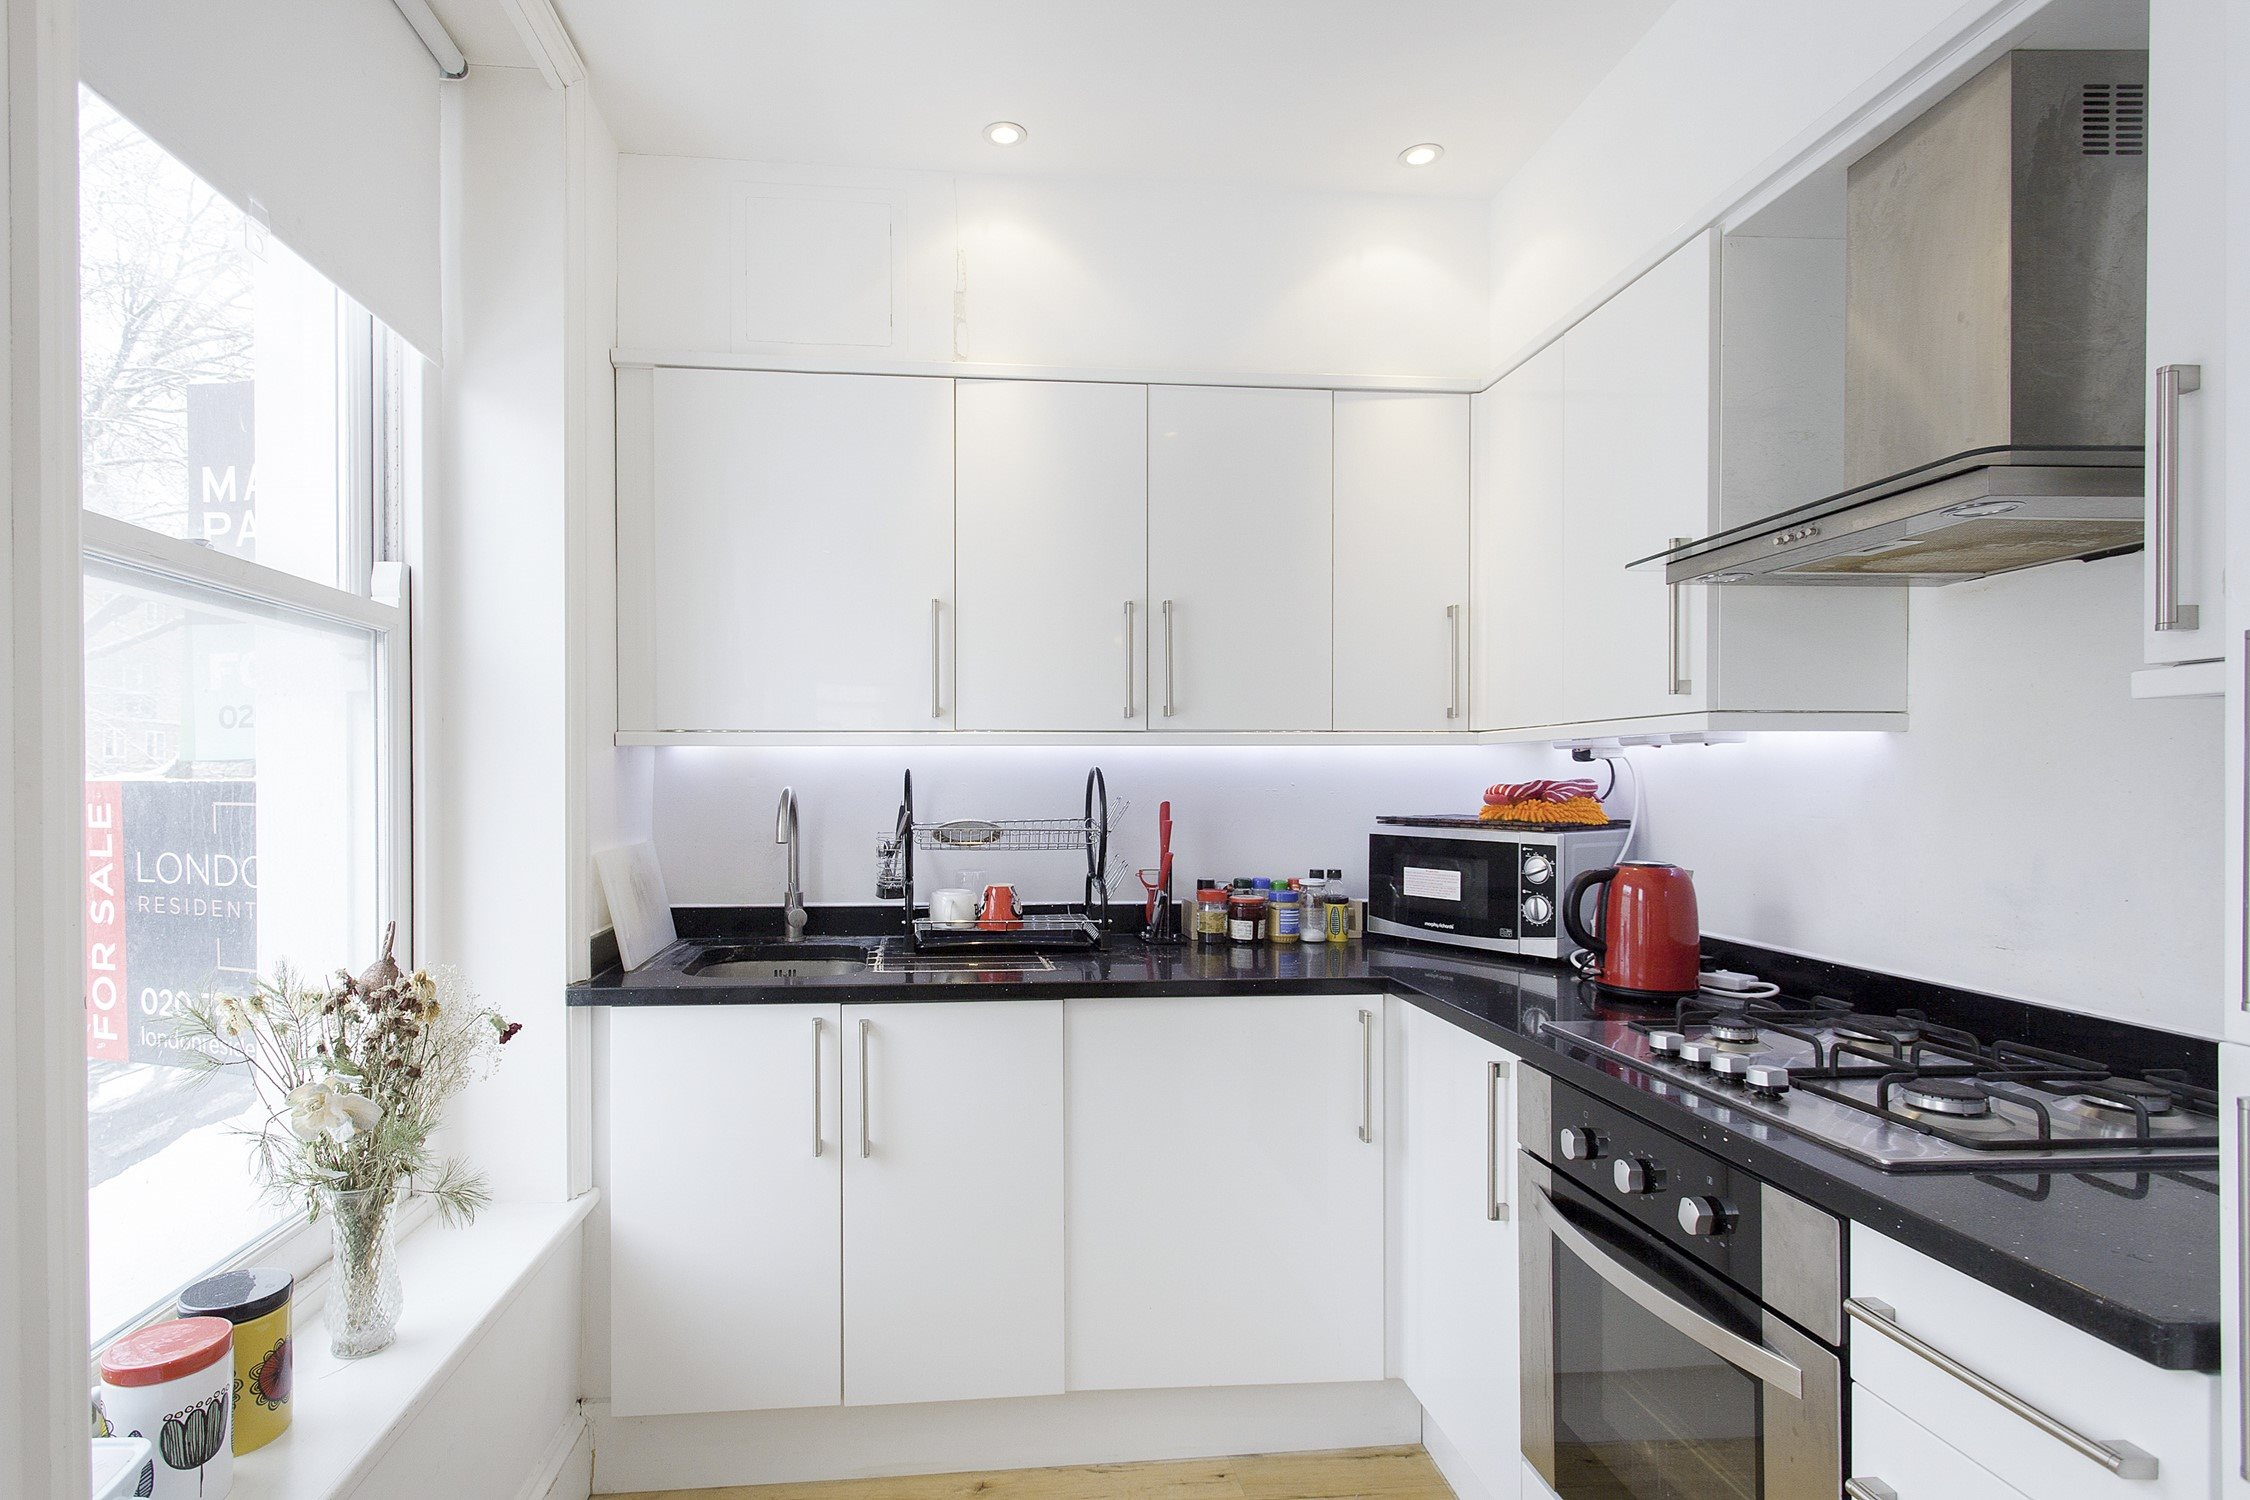 Portico - 1 Bedroom Flat for sale in Camden: Plender Street, NW1 ...